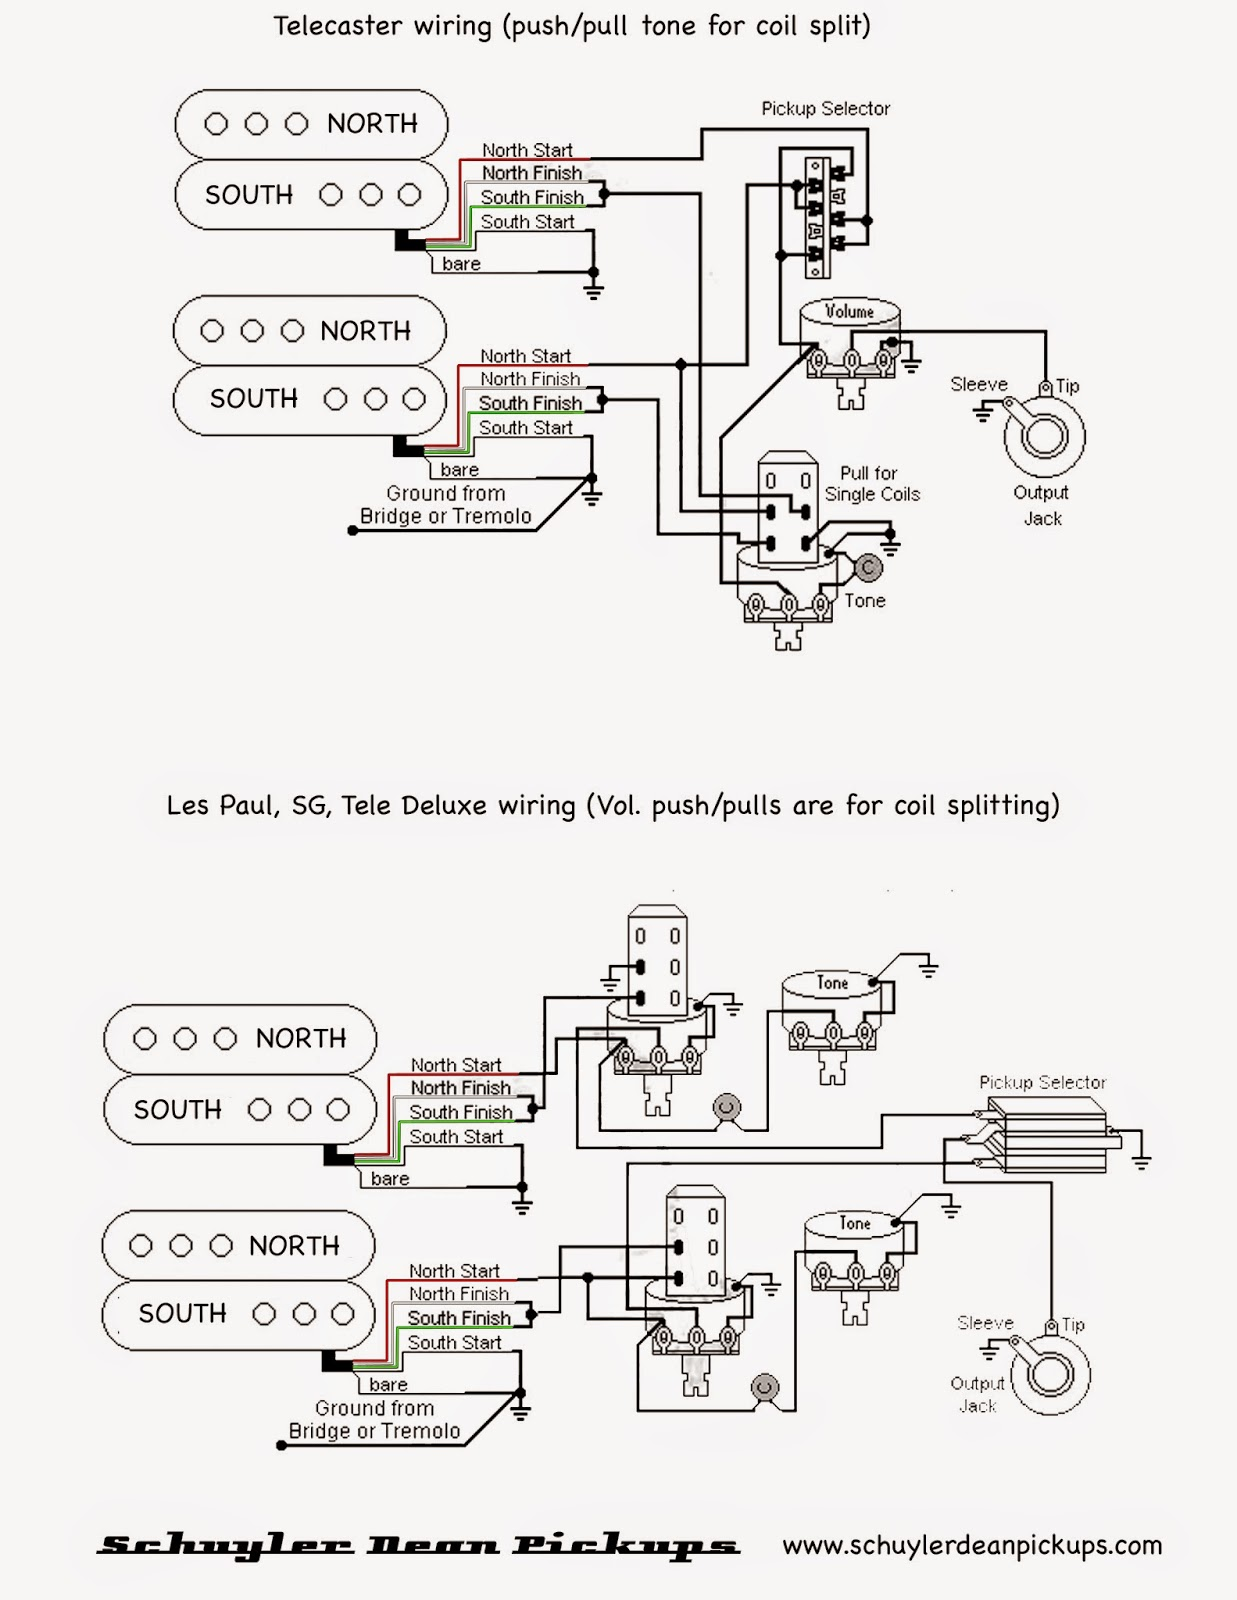 Single Coil Pickup Wiring Diagram: Schuyler Dean Pickups: 2014,Design